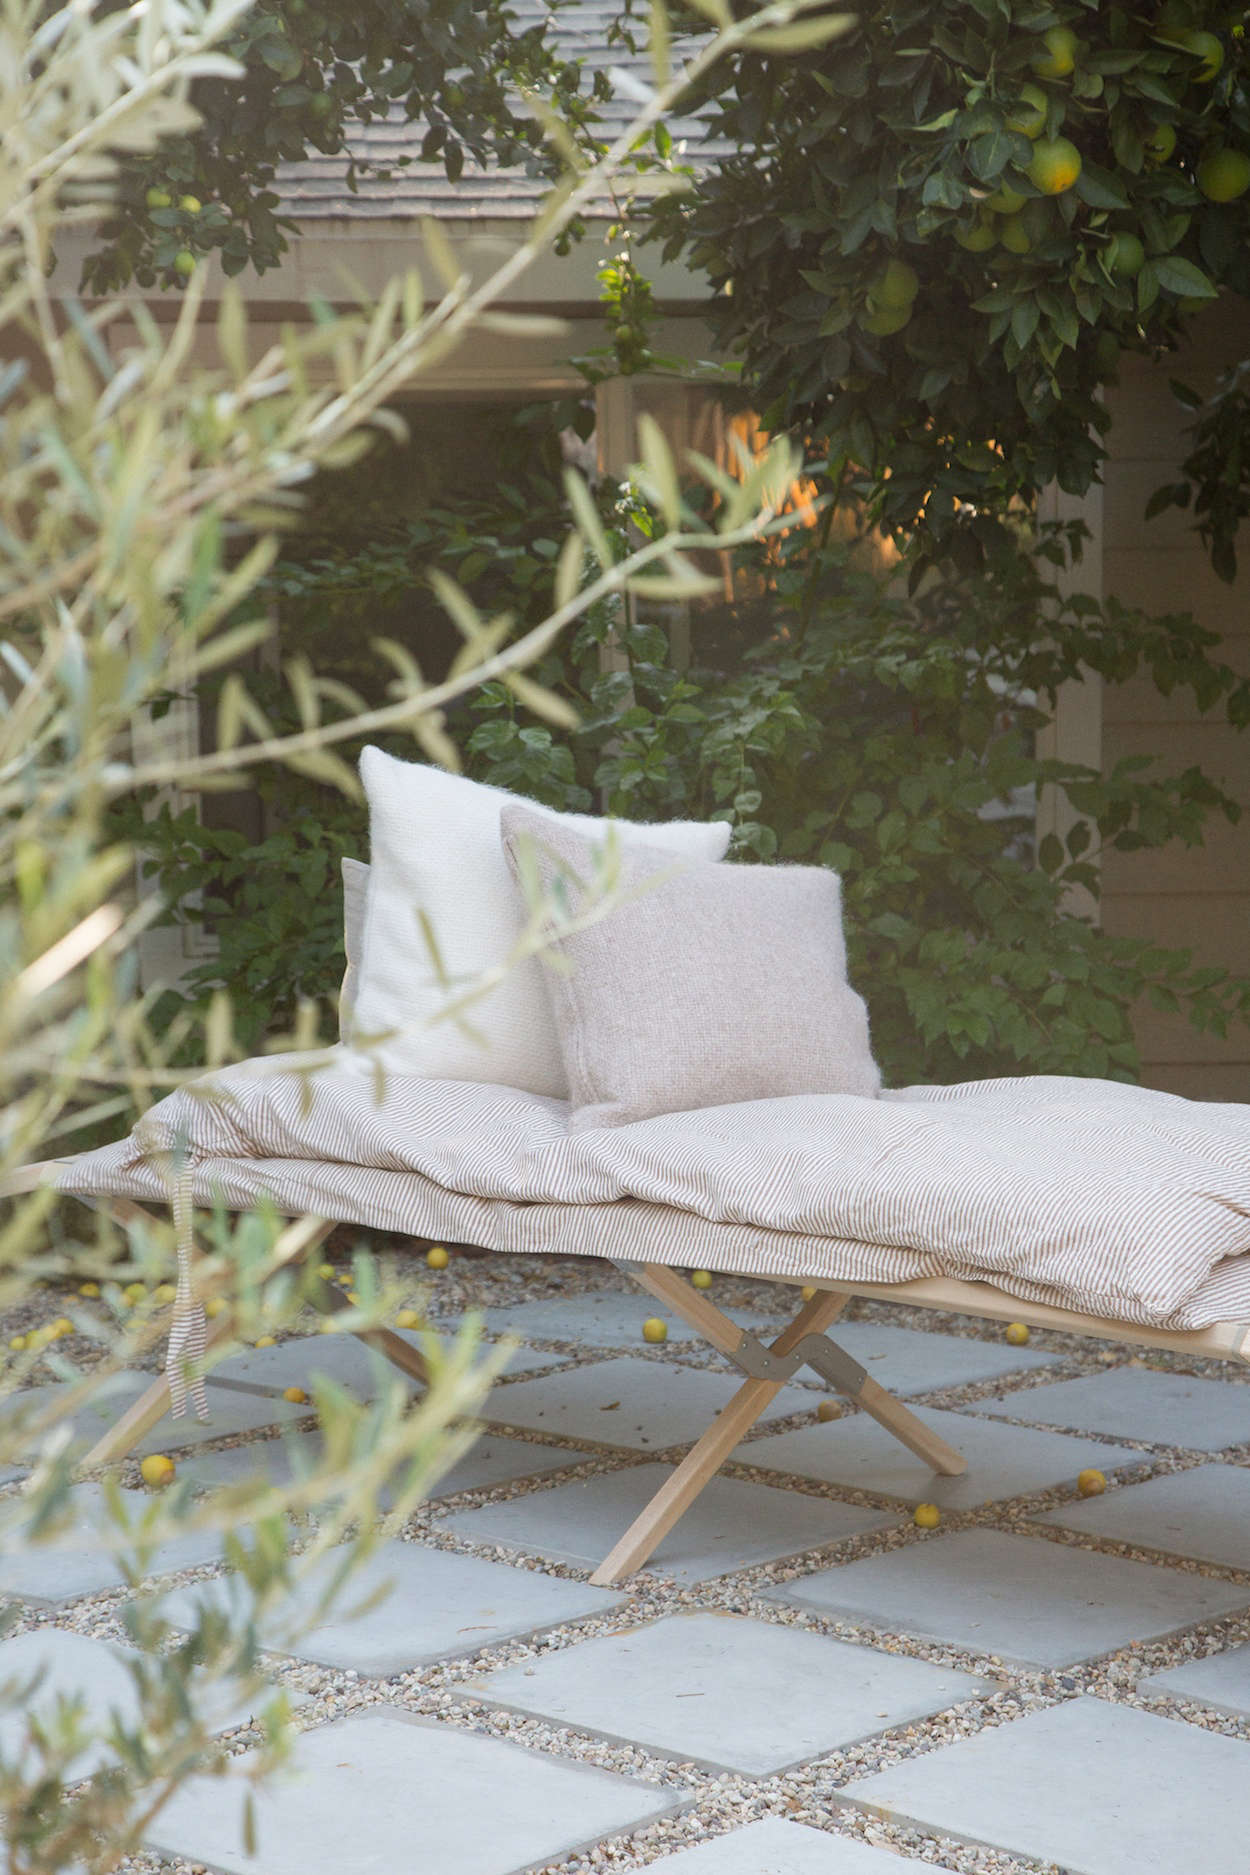 """When they bought the house, says Hunter, the outdoor space """"was filled with AstroTurf andbougainvillea."""" Now, the yard has citrus trees and an informal patio of concrete pavers and gravel. On the daybed, with the alpaca pillows: A Striped Linen Duvet (a collaboration between Jenni Kayne and Parachute); $349 for full/queen duvet with two shams."""